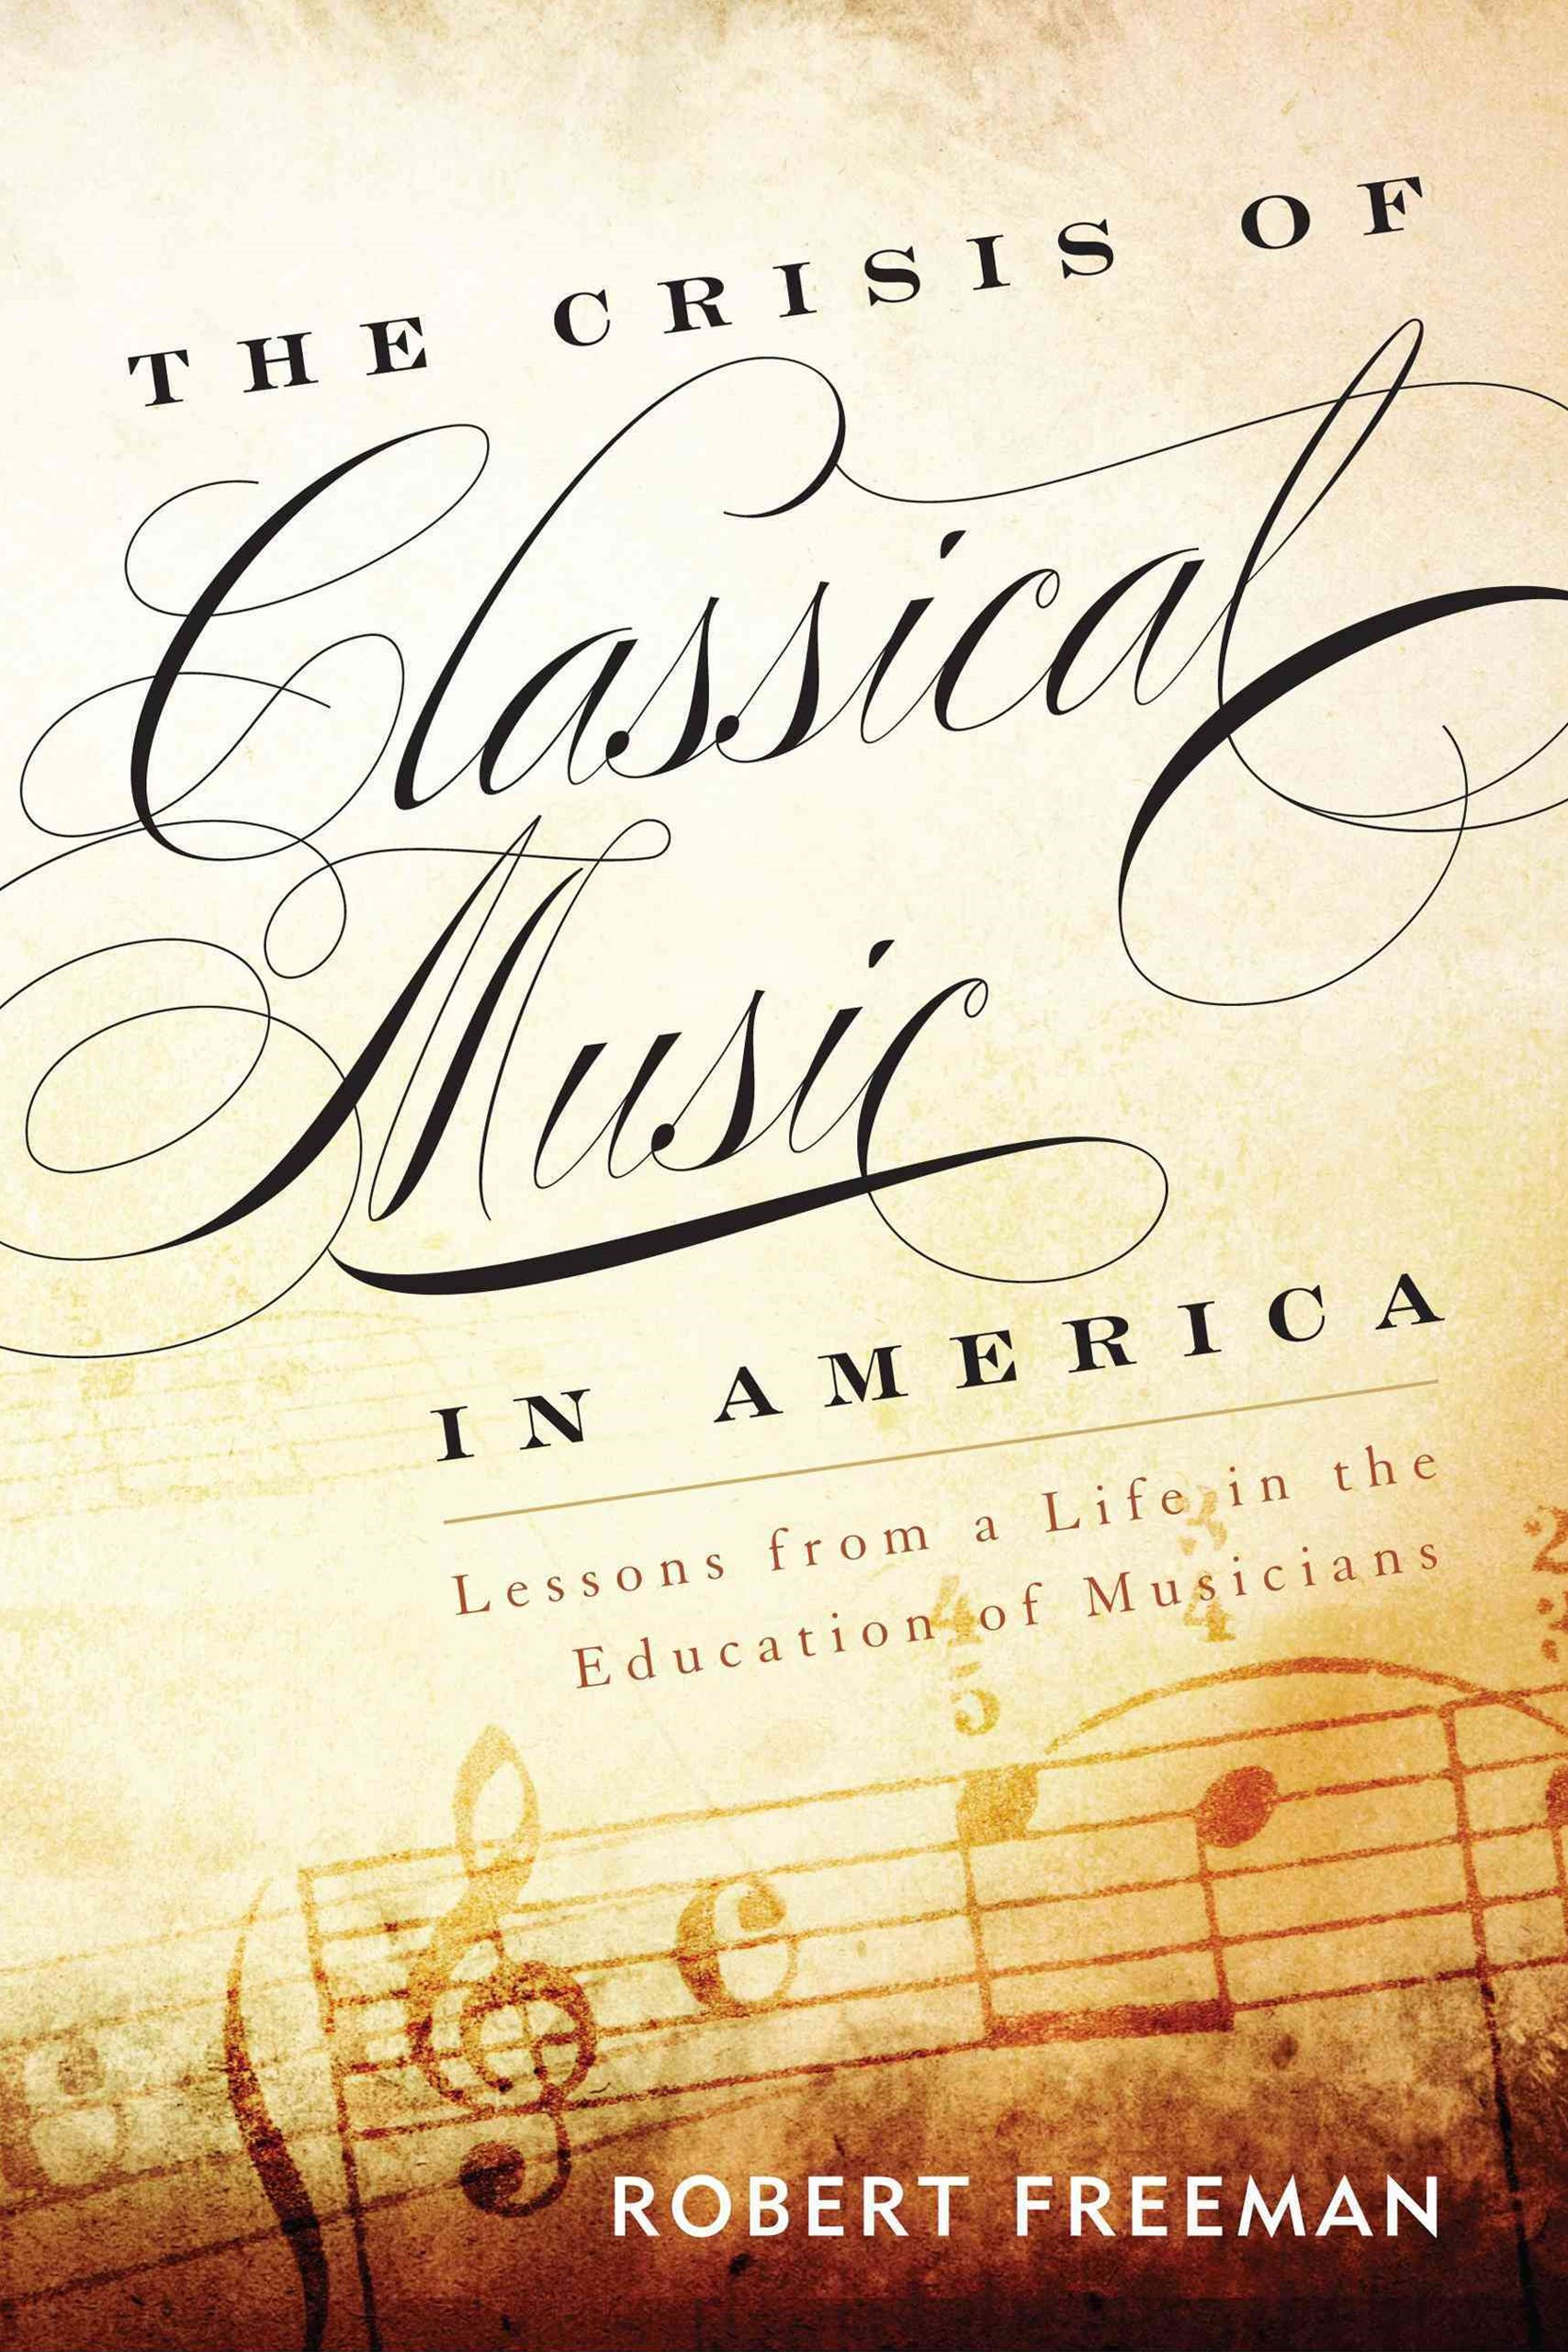 Crisis of Classical Music in America